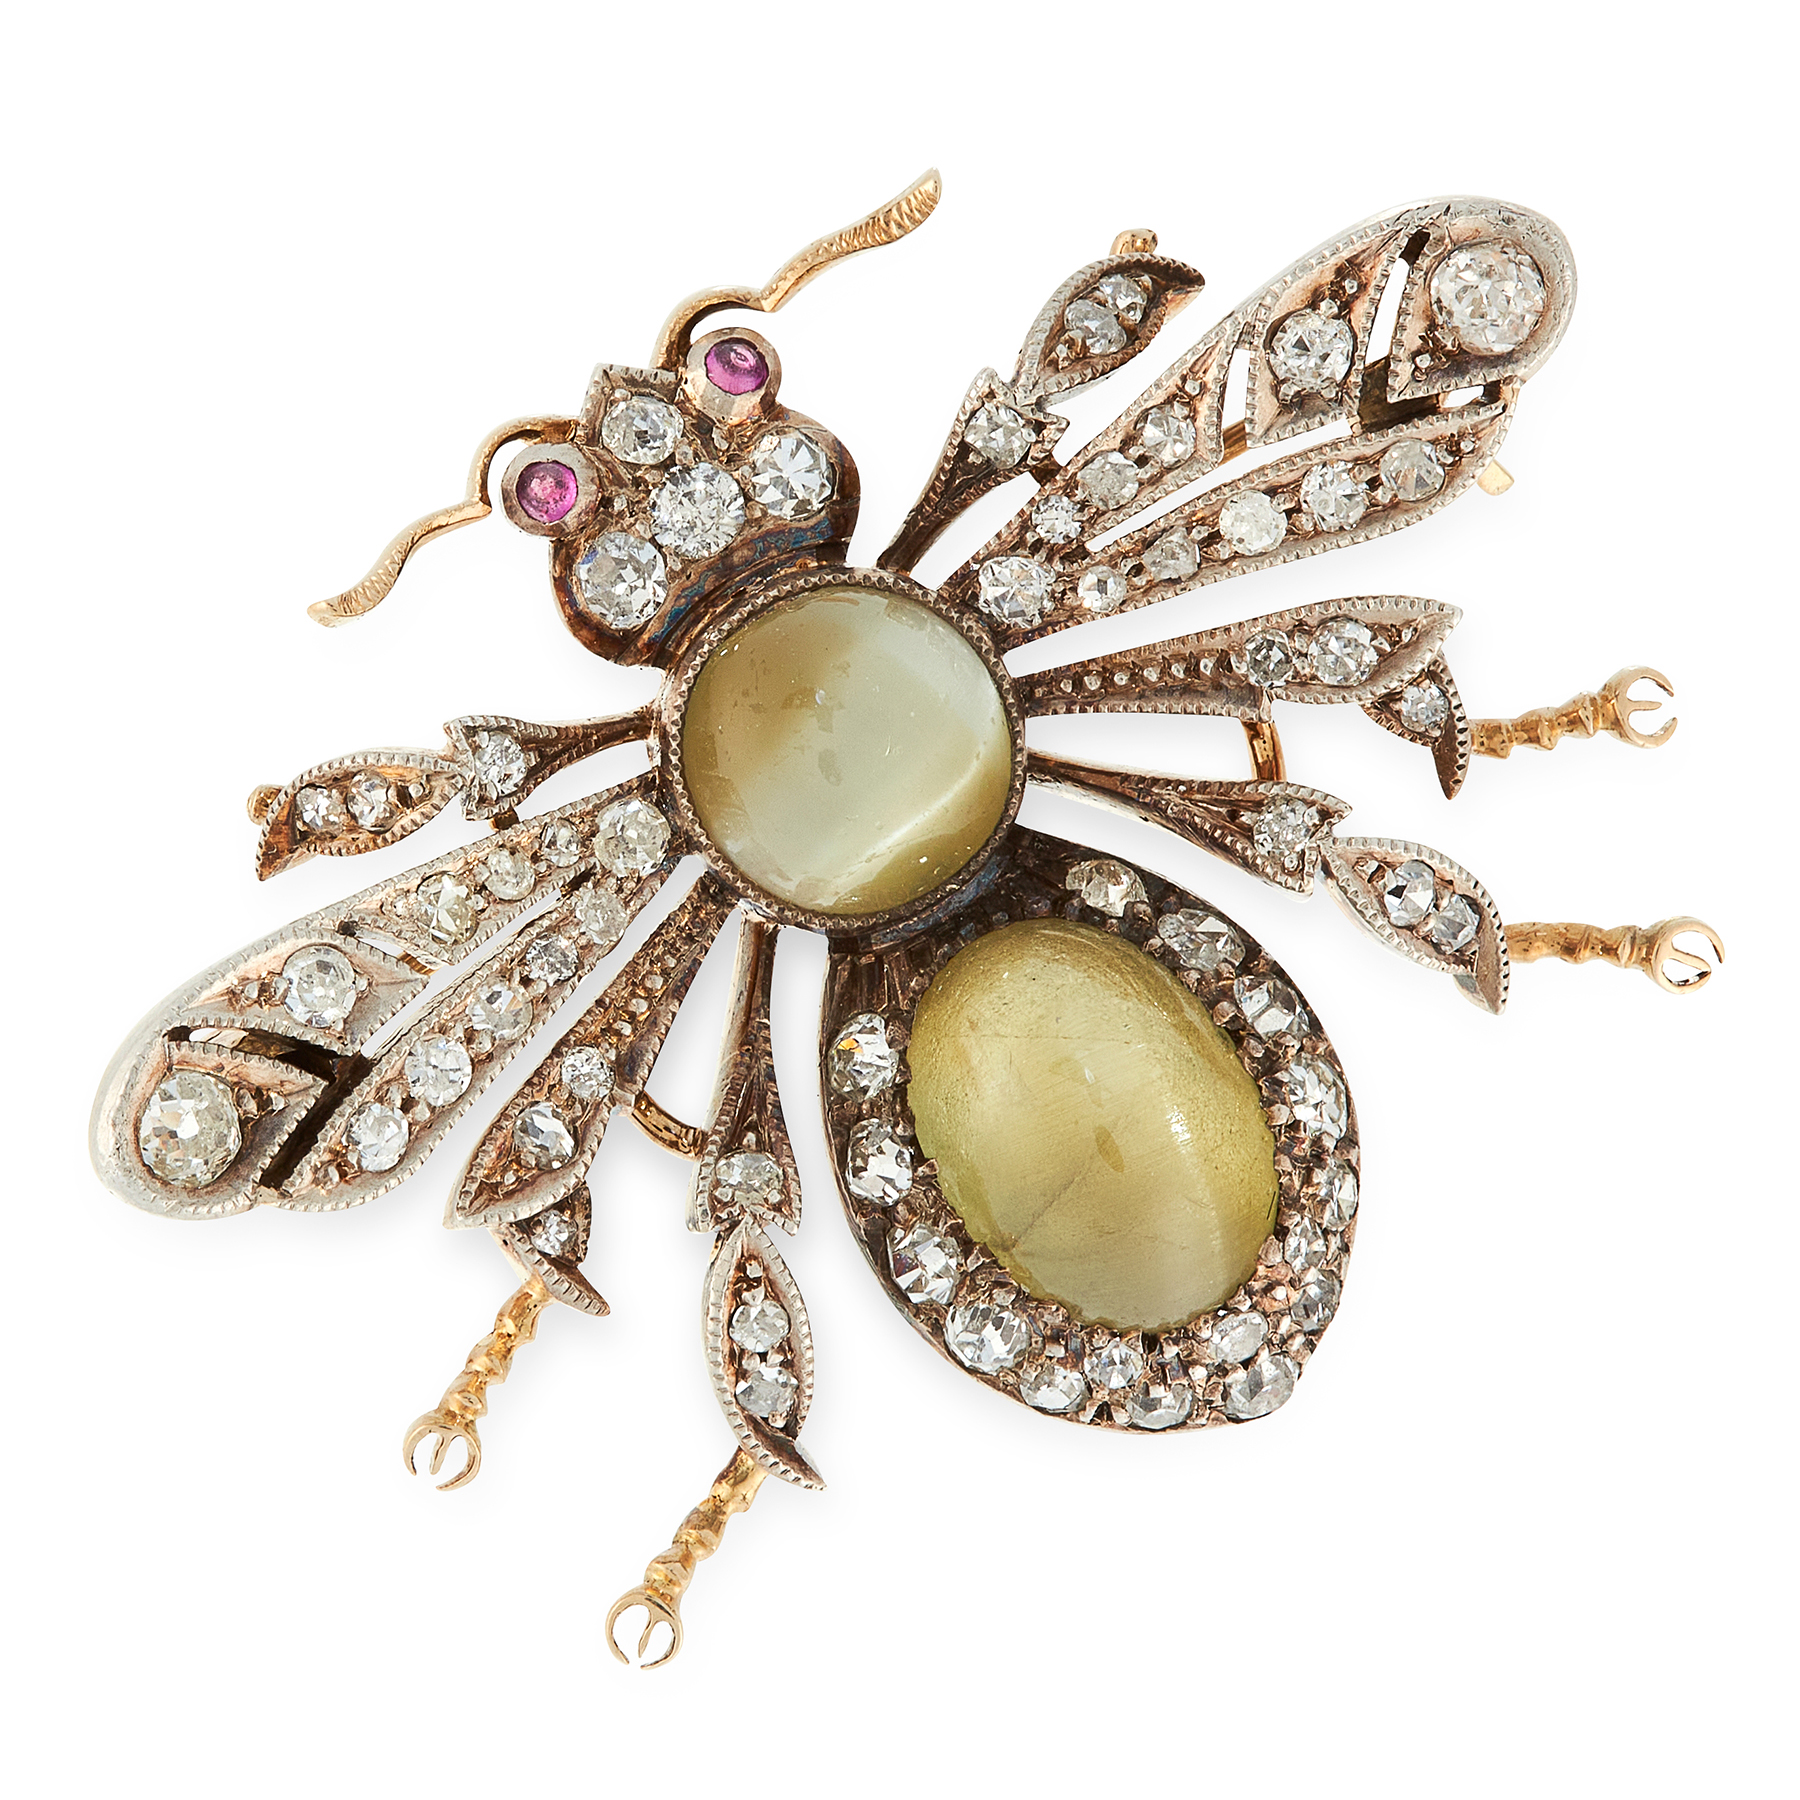 AN ANTIQUE CATS EYE CHRYSOBERYL, DIAMOND AND RUBY BEE BROOCH, 19TH CENTURY in yellow gold and